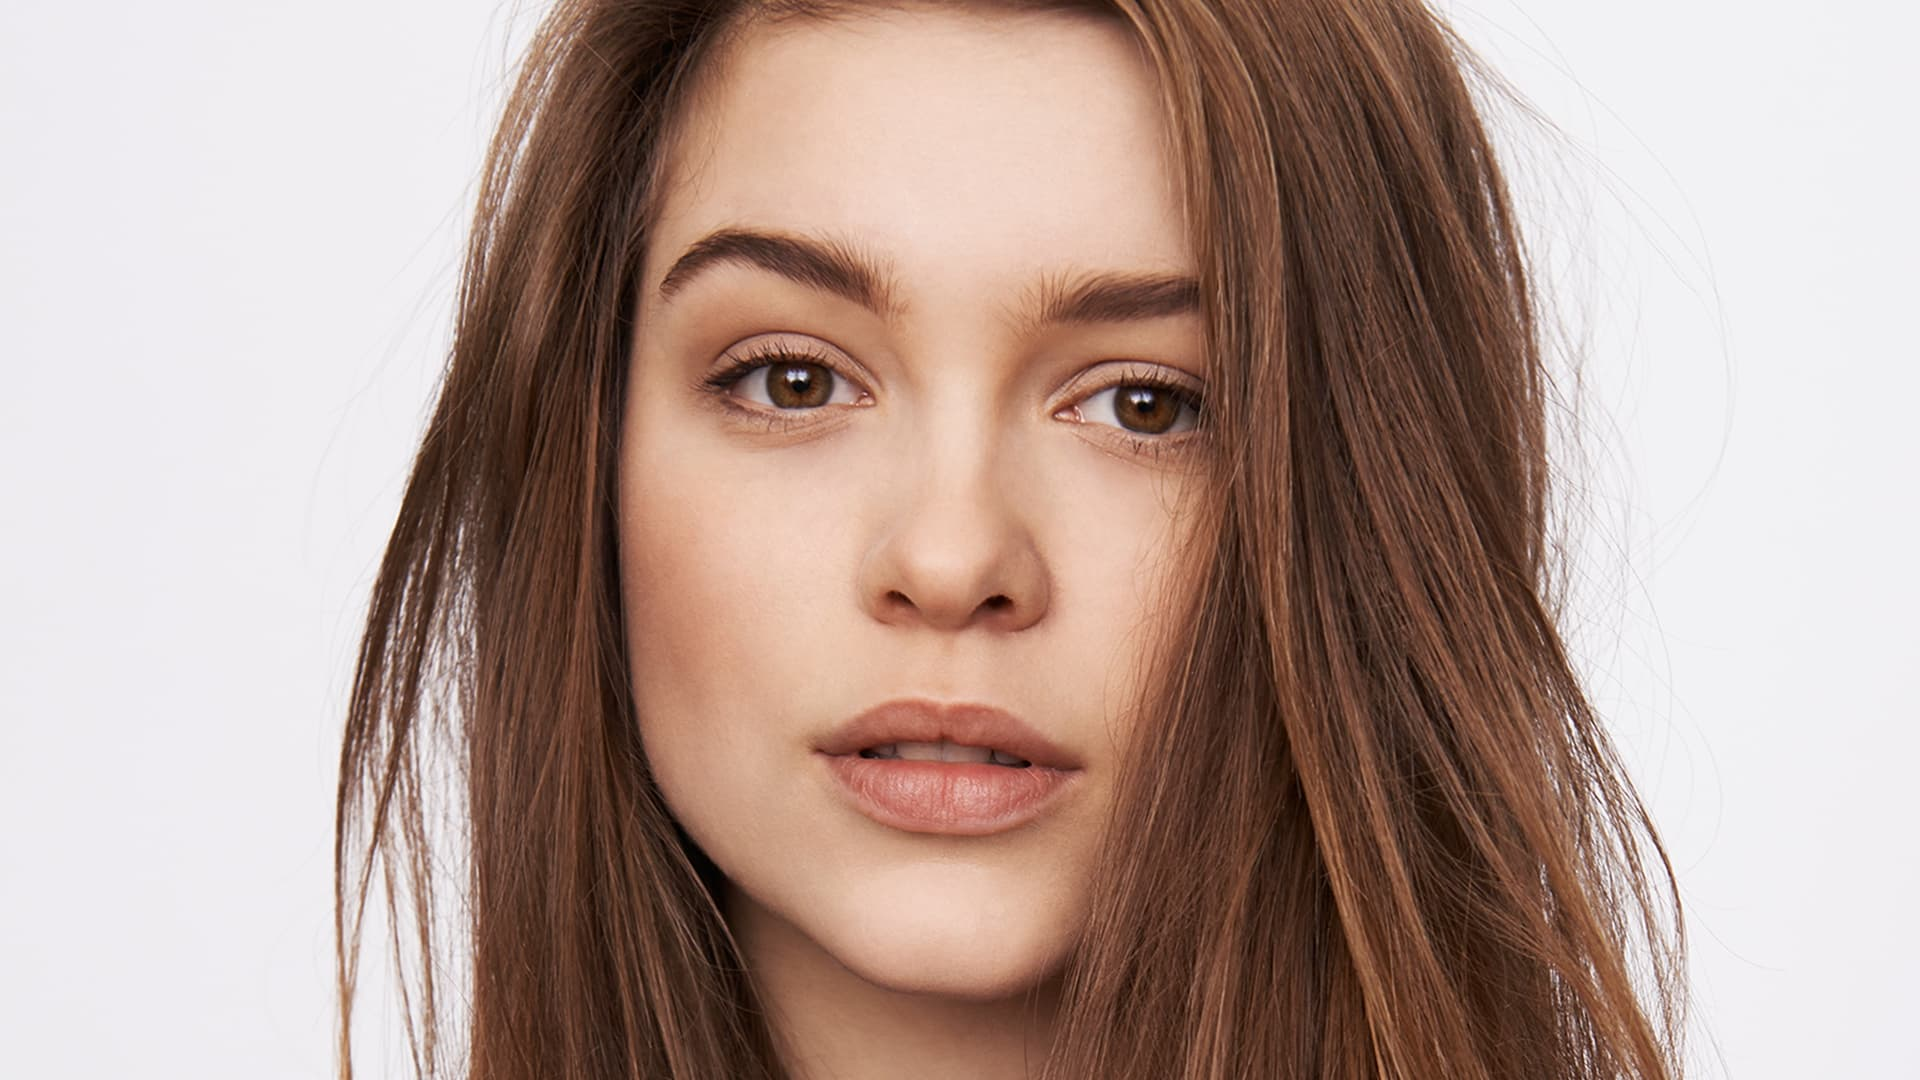 Sophie Cookson Wallpapers Hd Download: 6 Beautiful HD Sophie Cookson Wallpapers